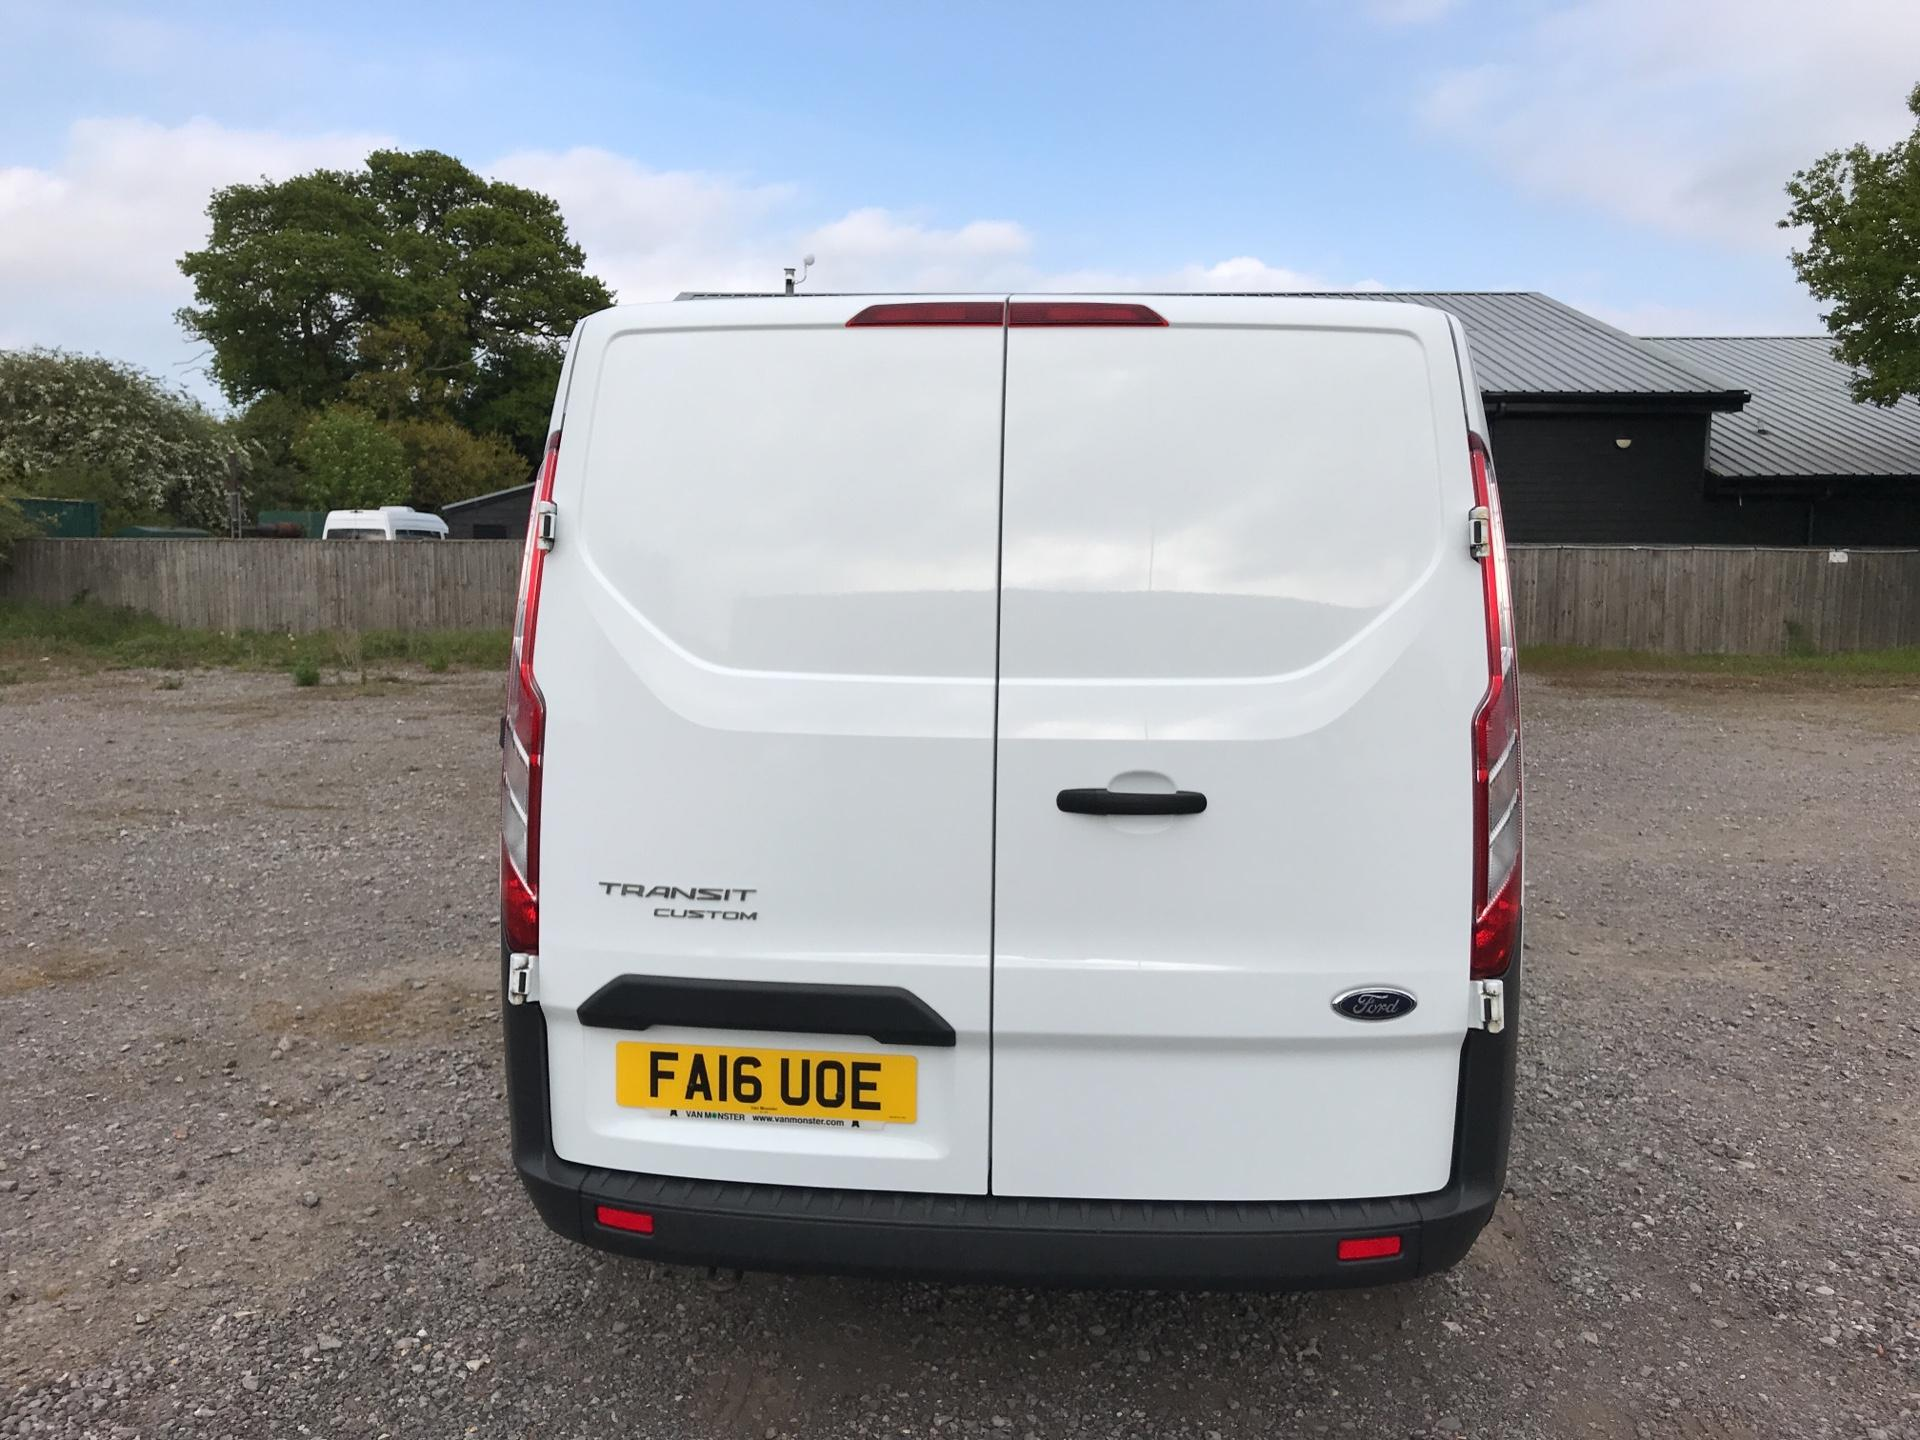 2016 Ford Transit Custom 290 L1 DIESEL FWD 2.2 TDCI 100PS LOW ROOF VAN EURO 5 (FA16UOE) Thumbnail 4